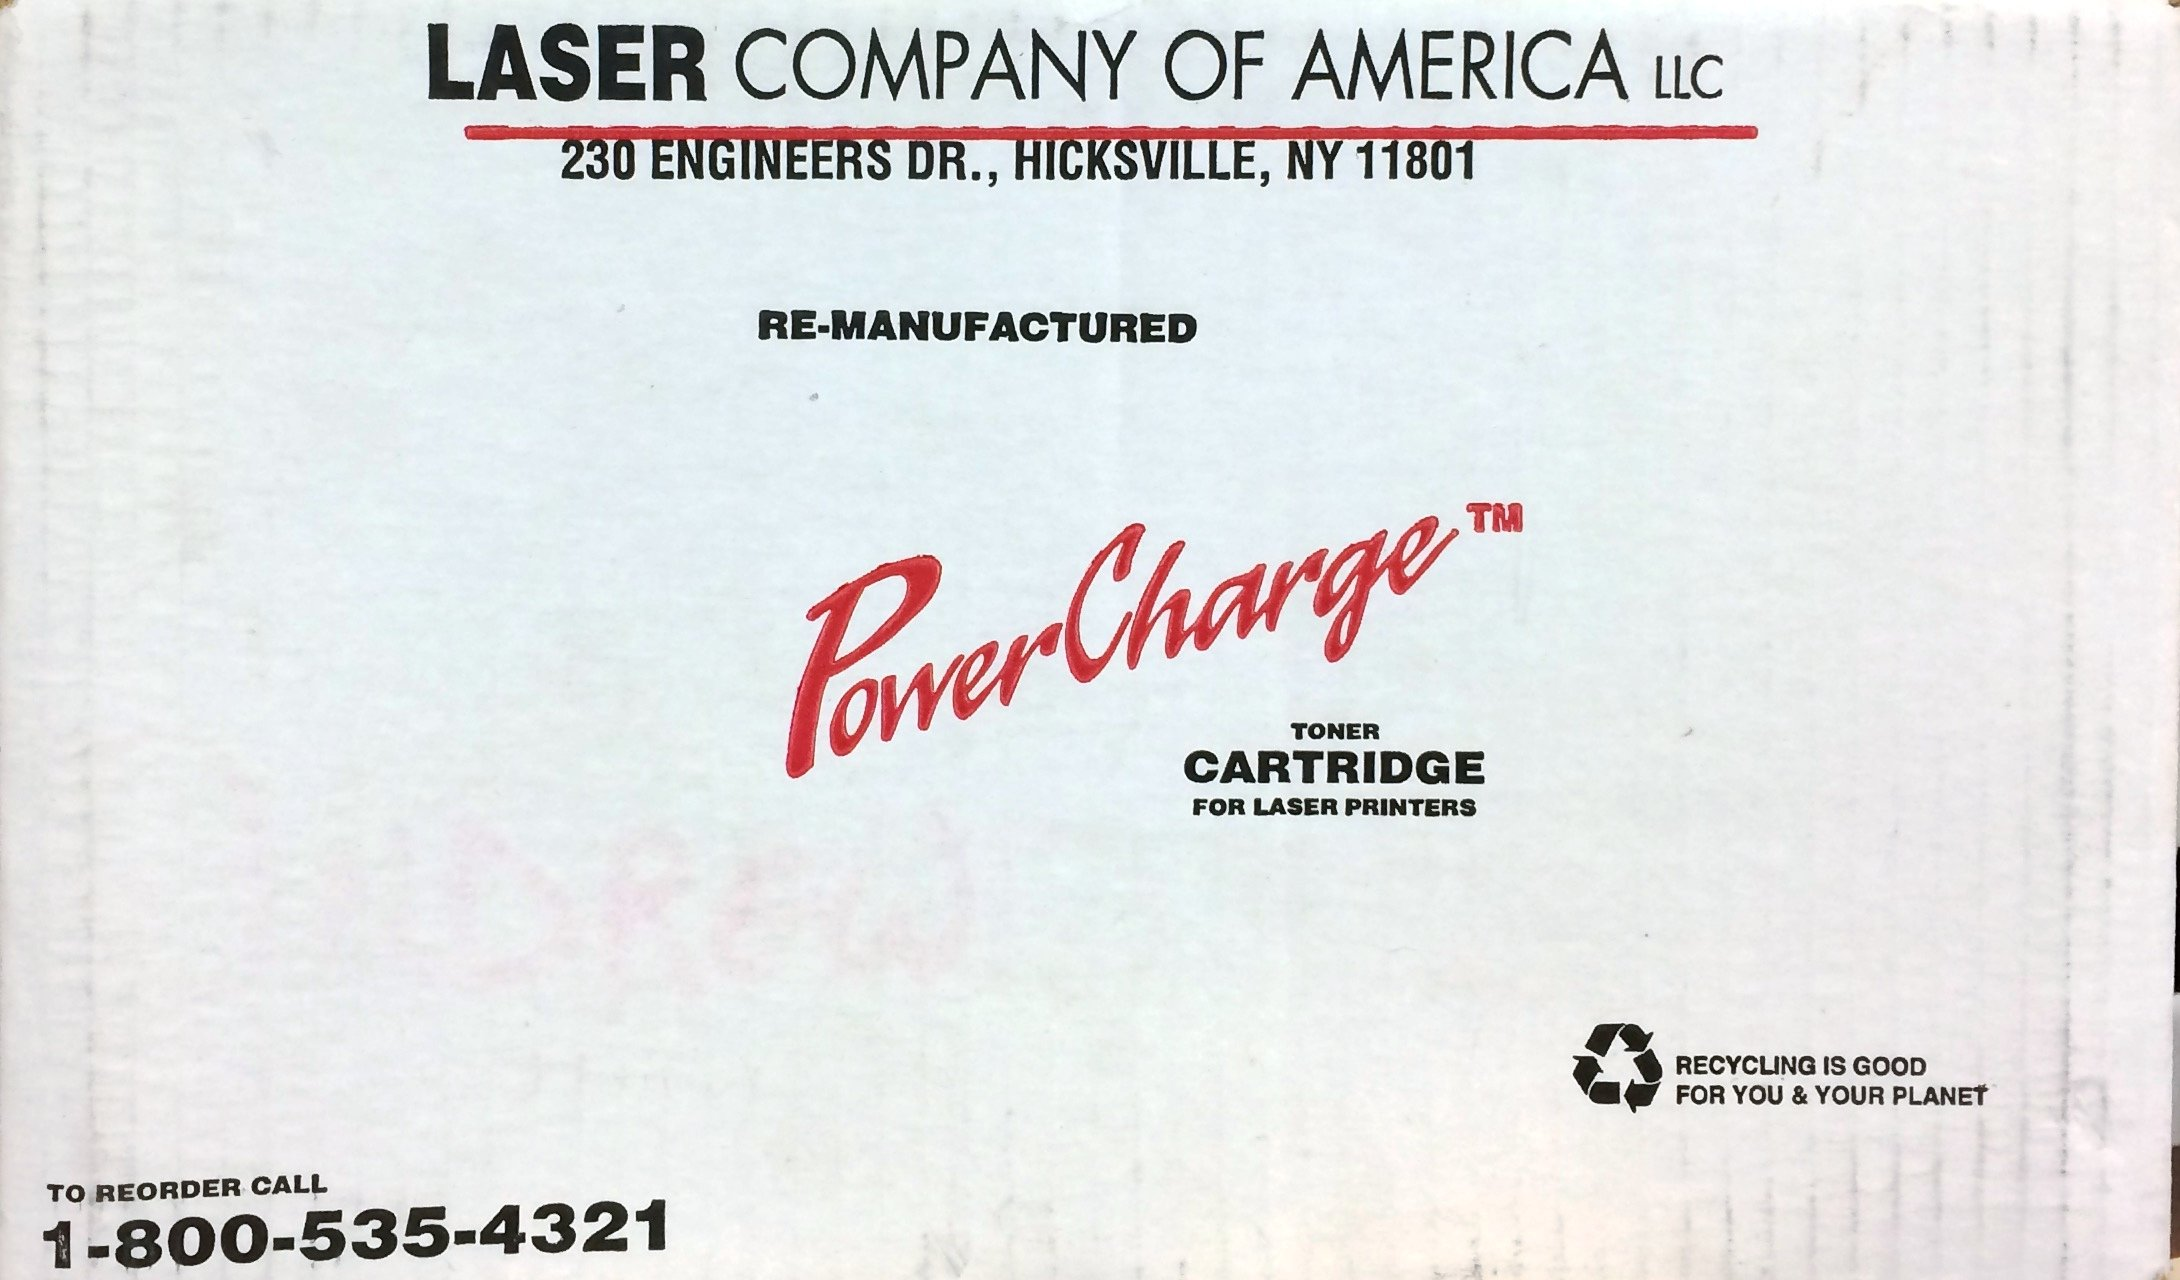 POWER CHARGE TONER CARTRIDGE LJ 4000 FOR USE IN HP LASER JET 4000, 4000T, AND 4000TN by POWER CHARGE (Image #1)